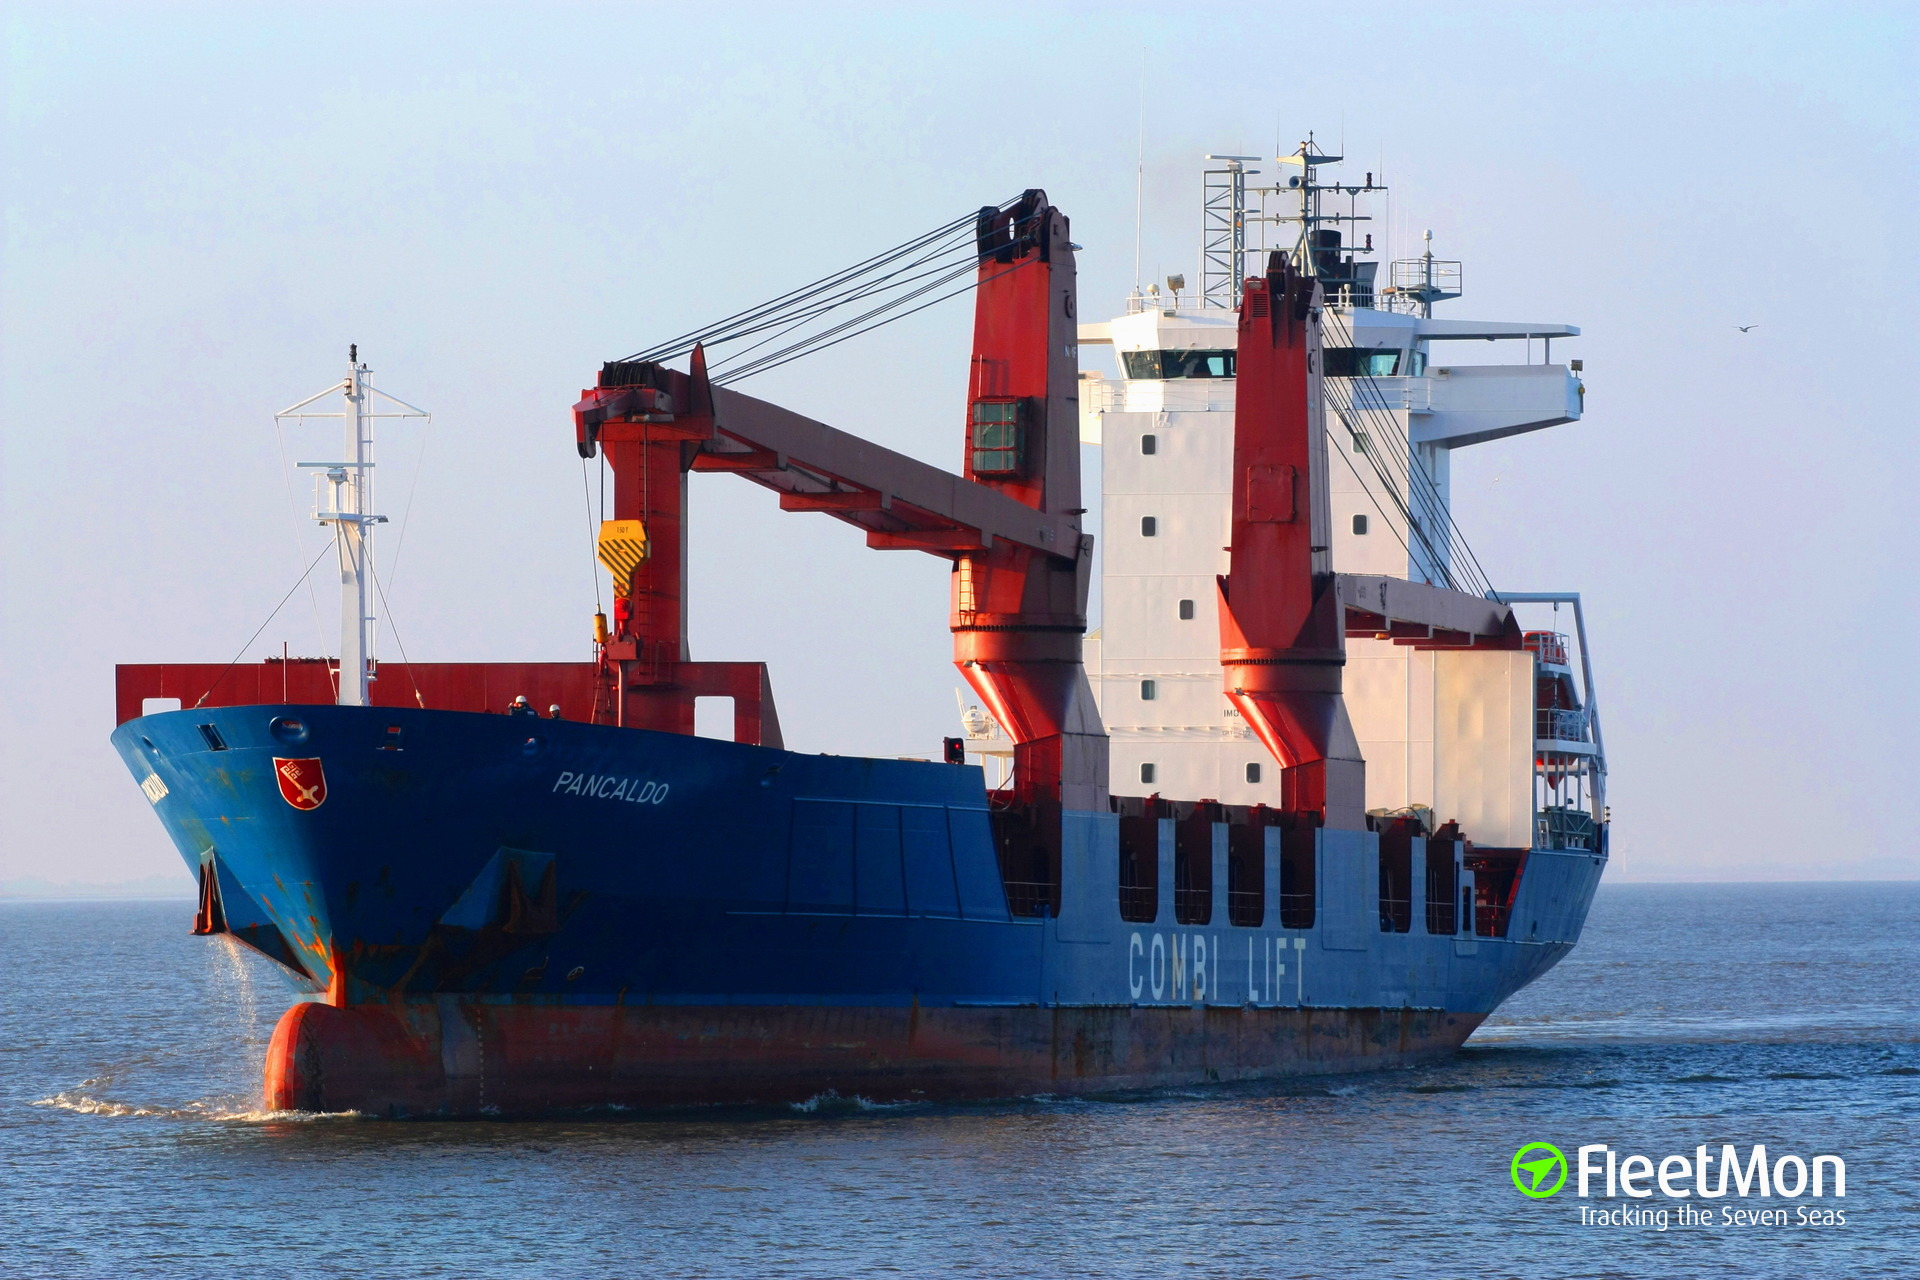 SEMELA detained in Civitavecchia after stability accident